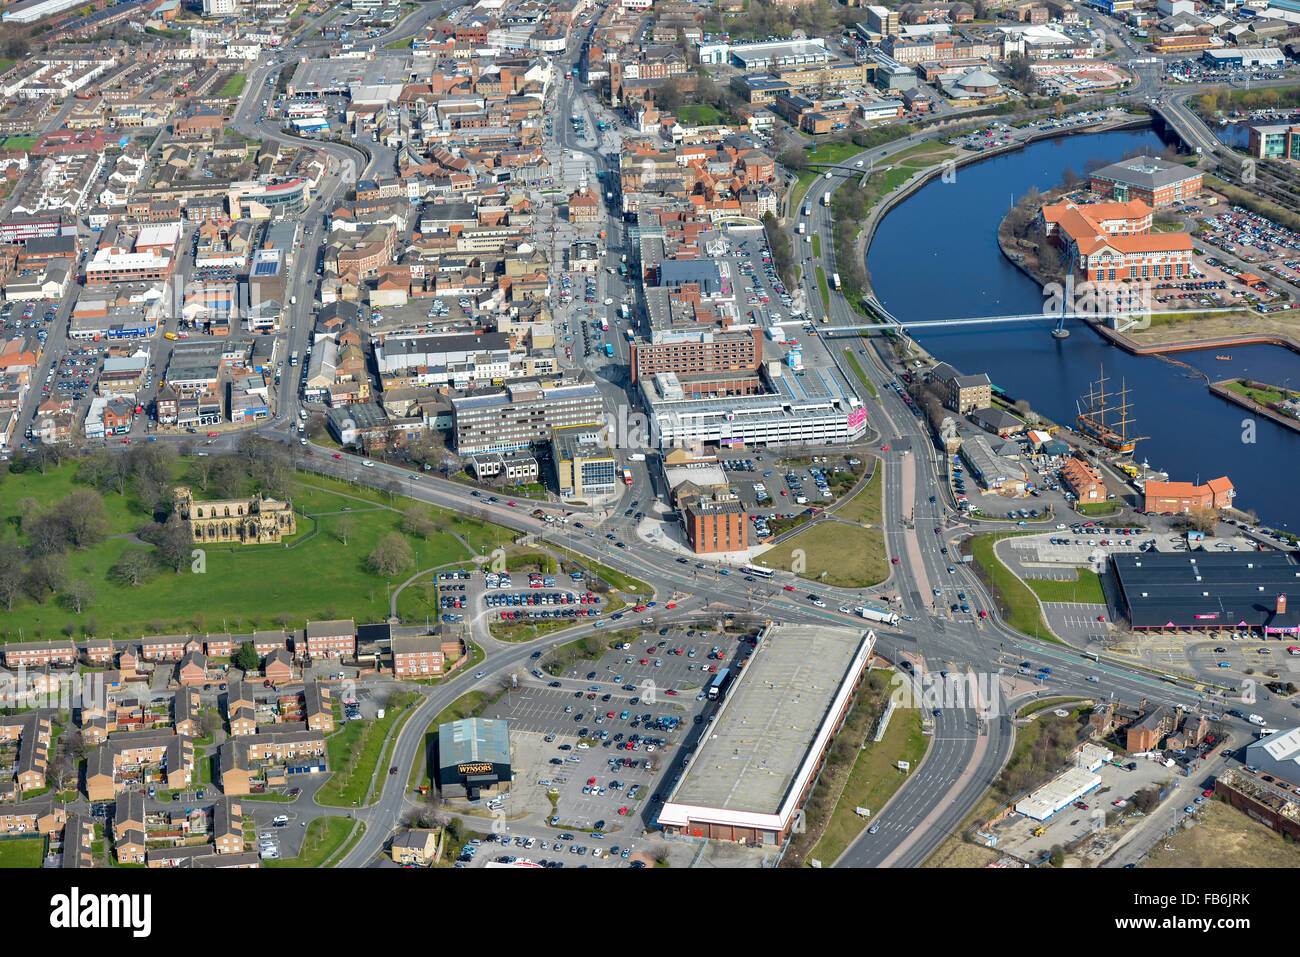 An aerial view of Stockton on Tees town centre and shopping precinct Stock Photo